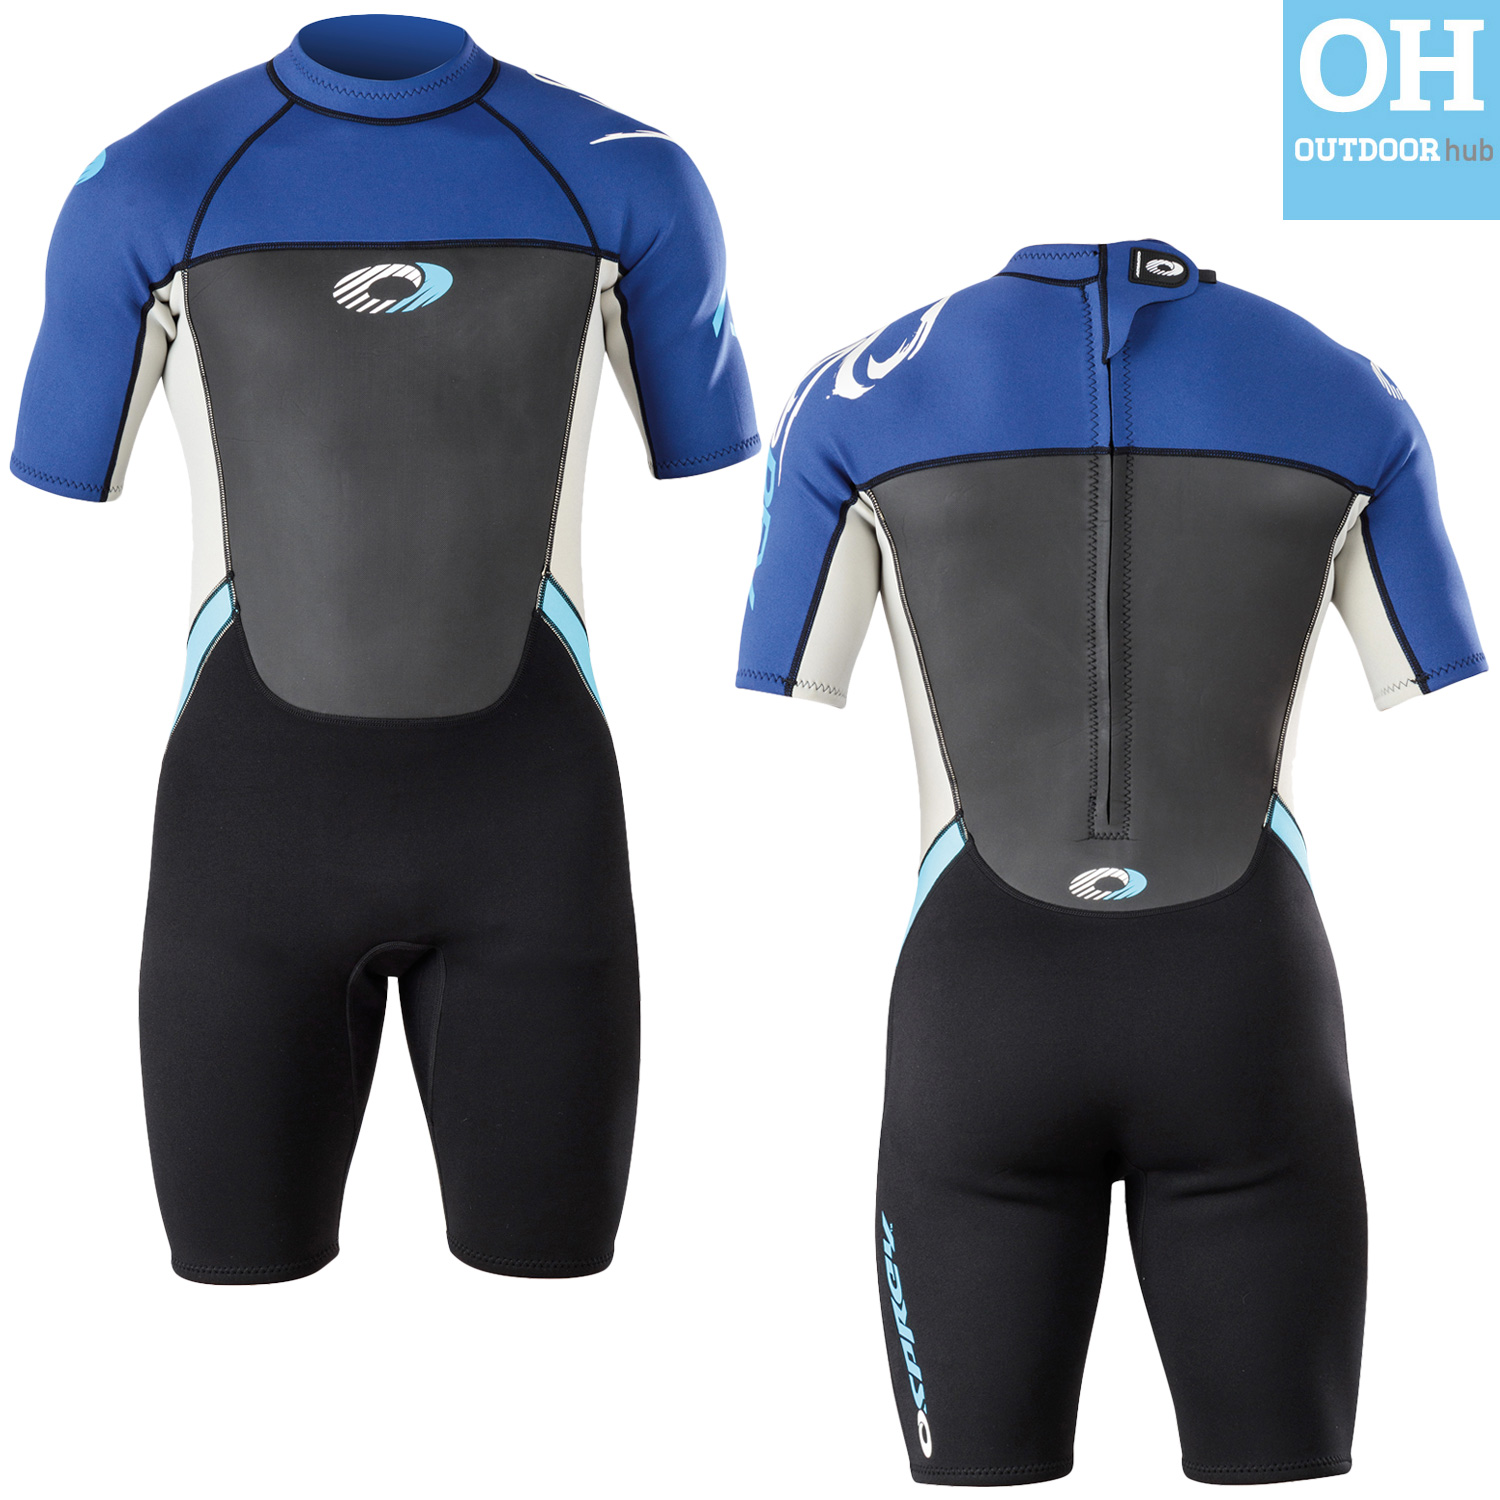 Details about Osprey Origin Childrens 3/2mm Shorty Neoprene Kids Wetsuit  Shortie Boys Girls